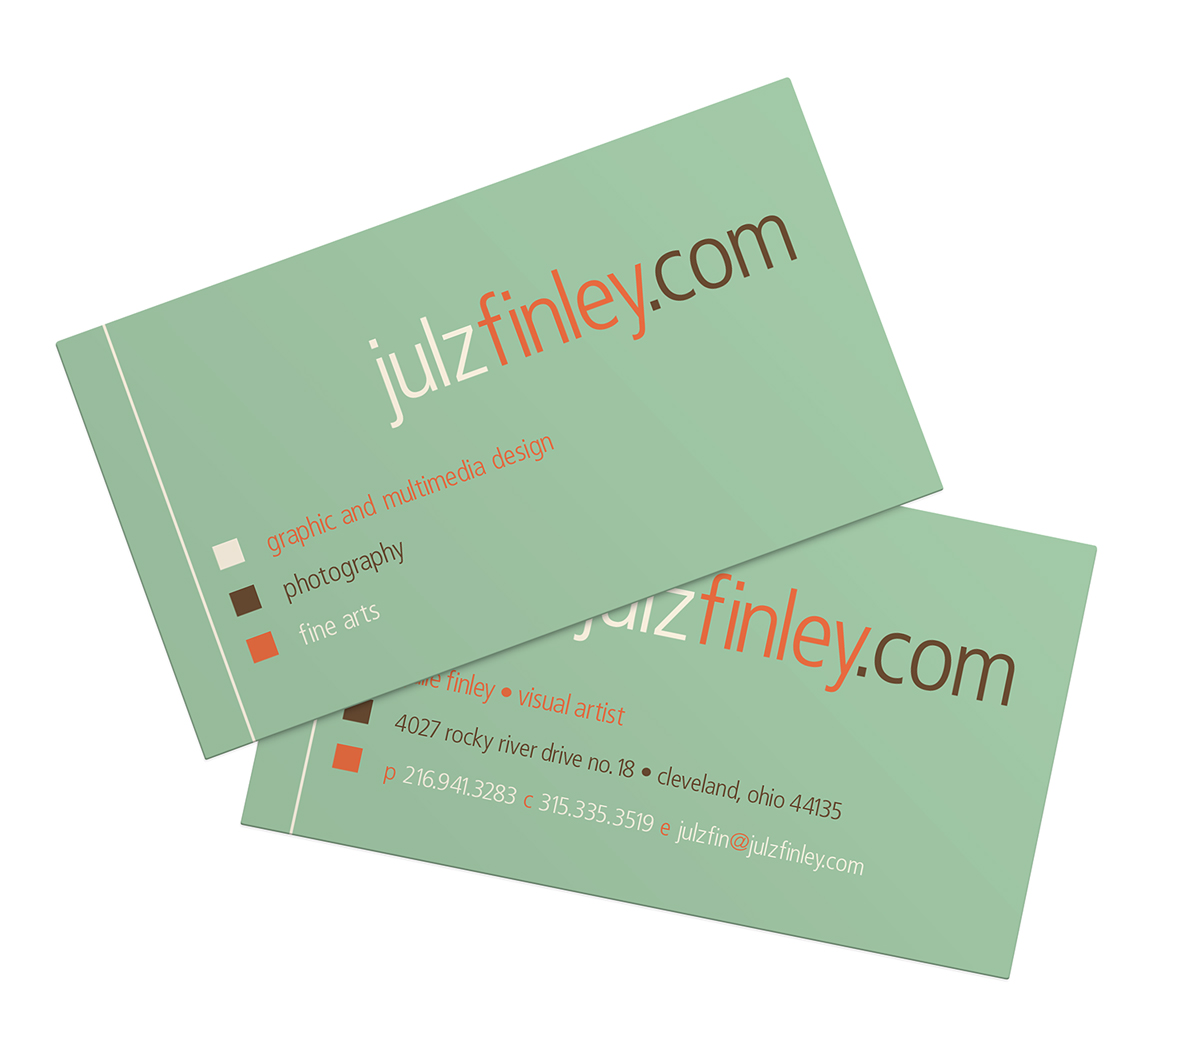 Business cards by julzfinley freelancer on guru julzfinley personal business card julie finley 2005 colourmoves